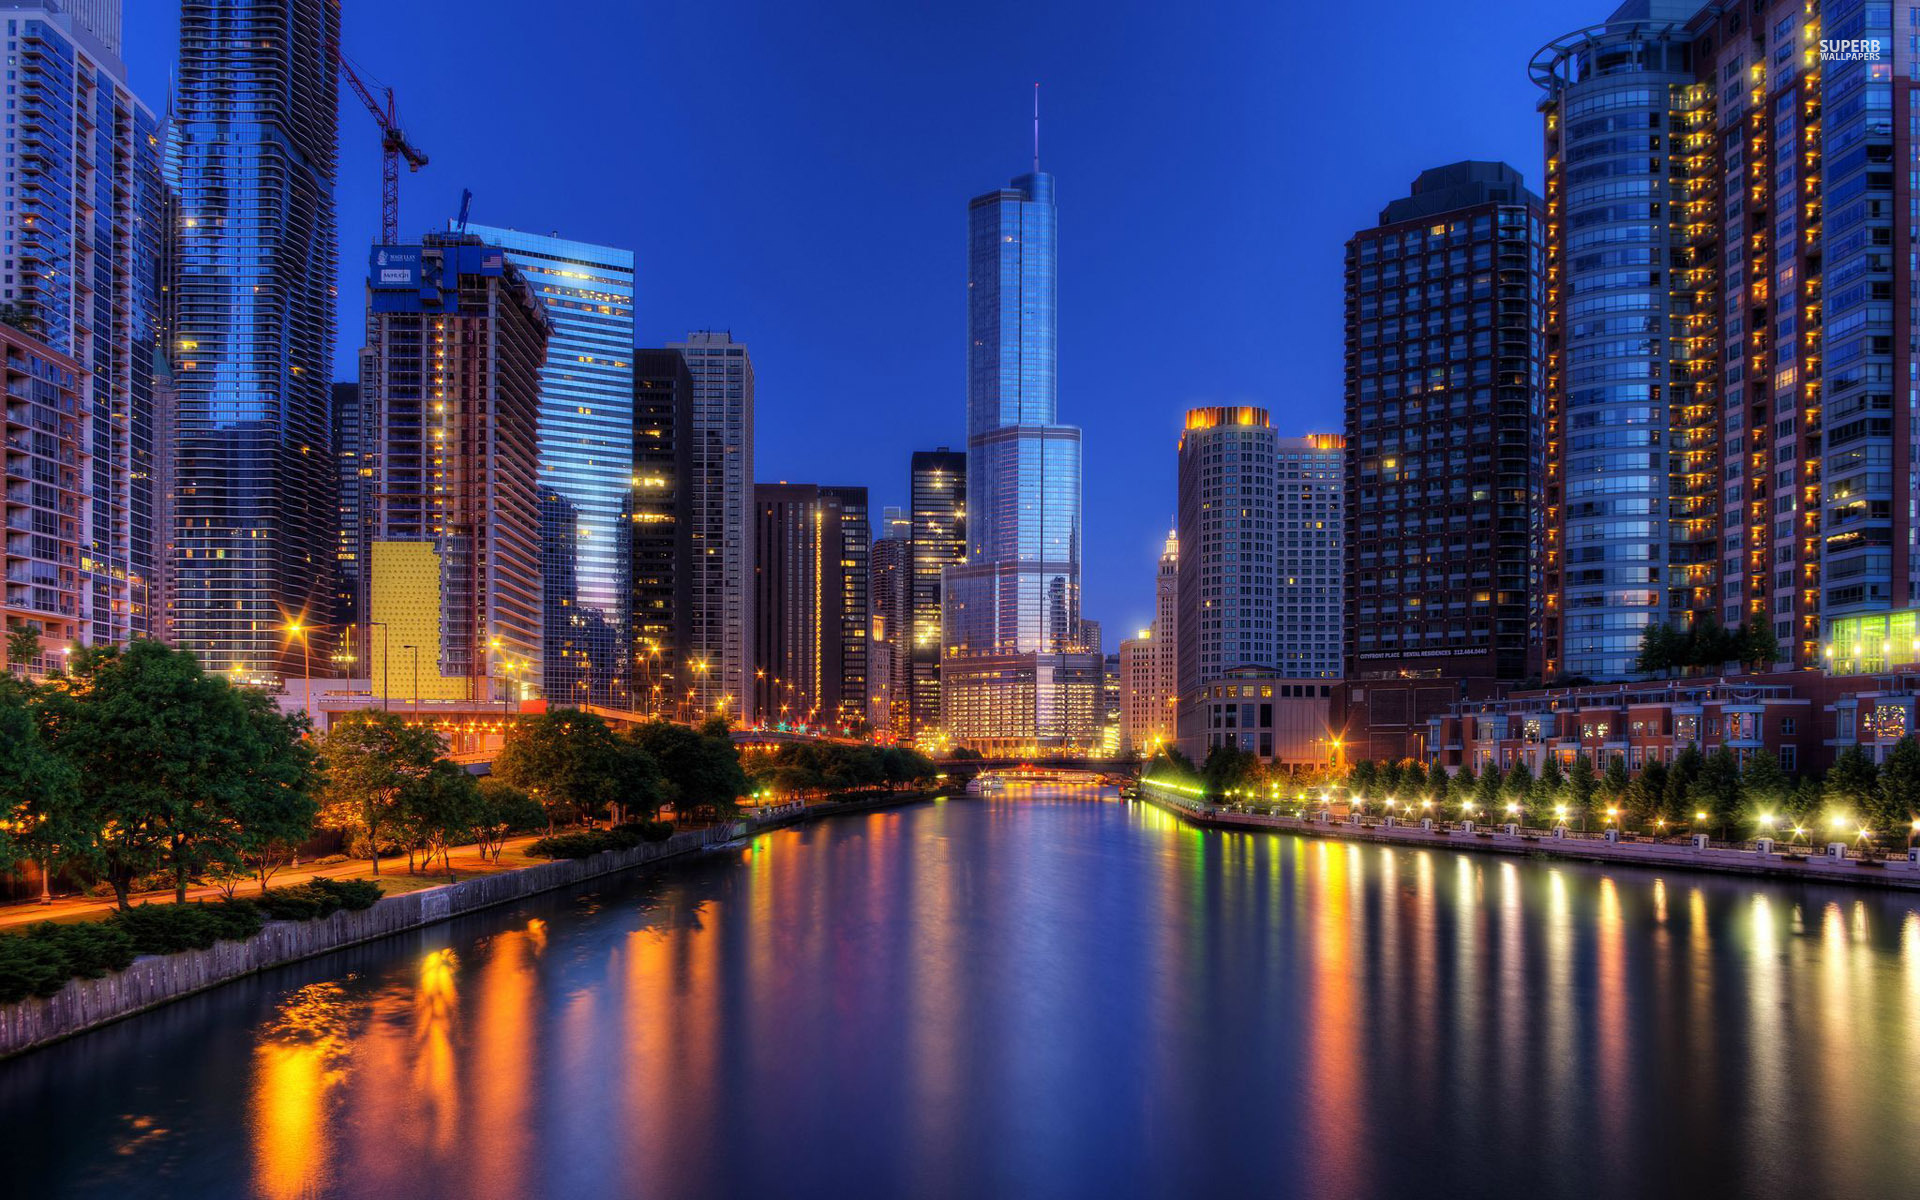 Chicago wallpaper 32 wallpapers adorable wallpapers - Chicago skyline wallpaper 1920x1080 ...